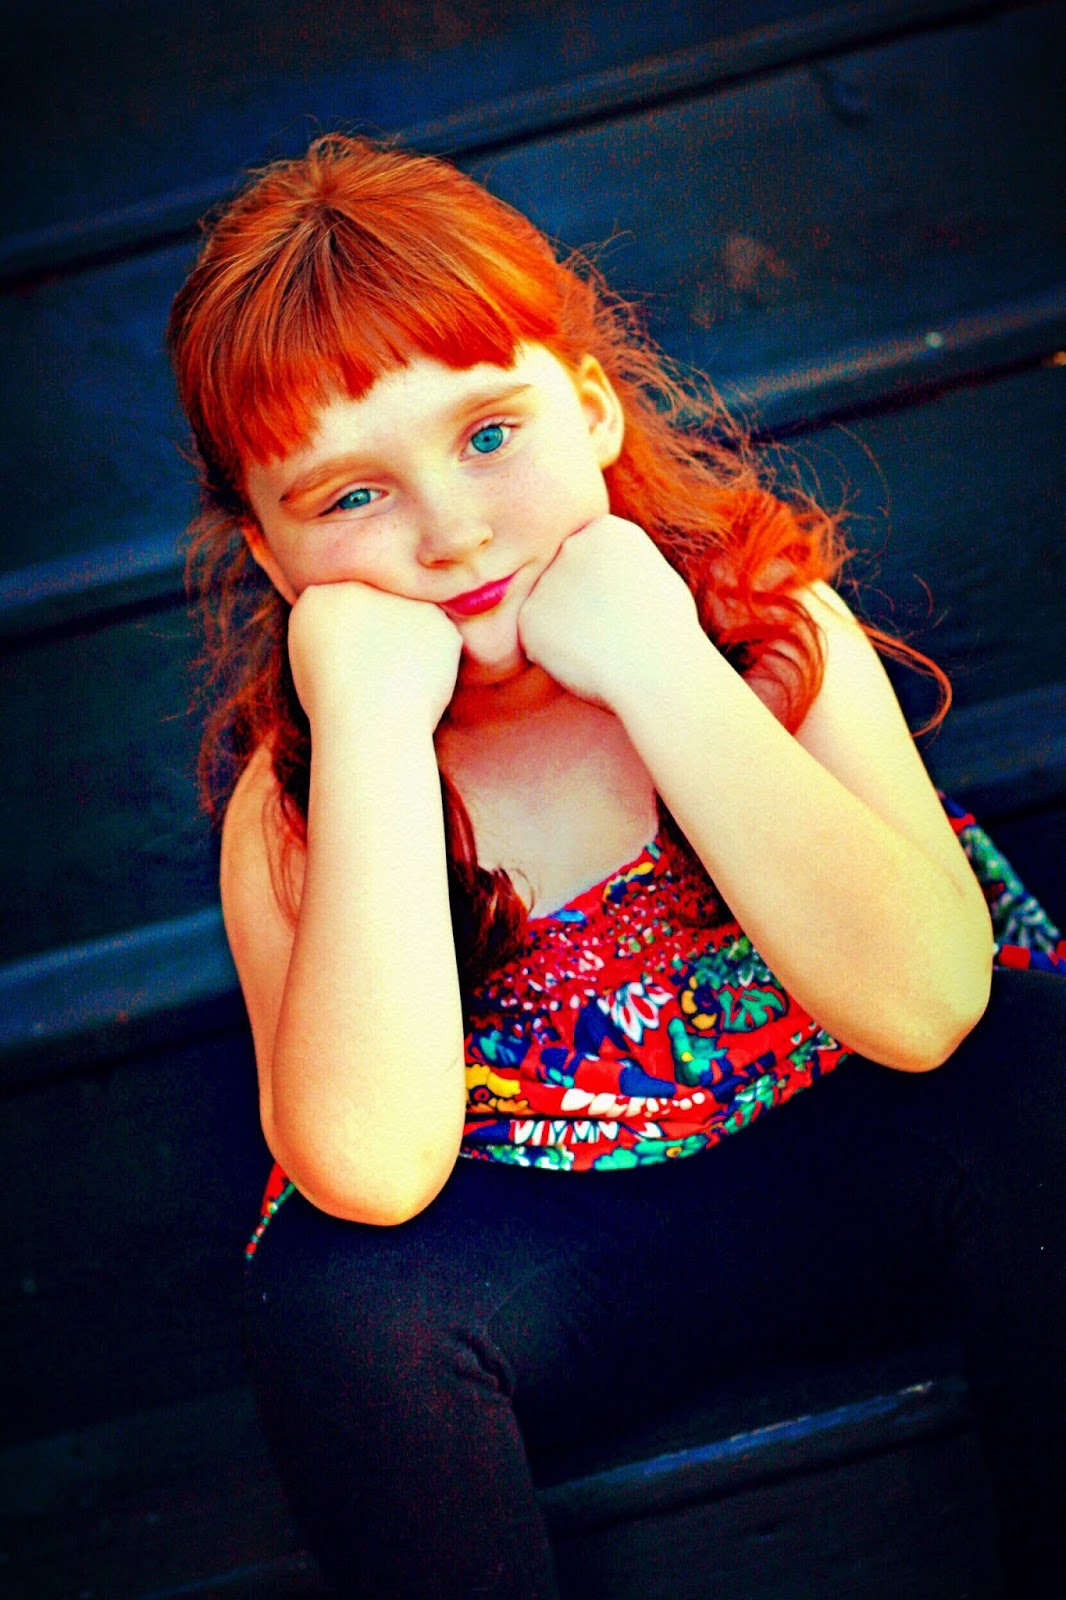 young girl photo, redhead photo, ginger girl, cute ginger child